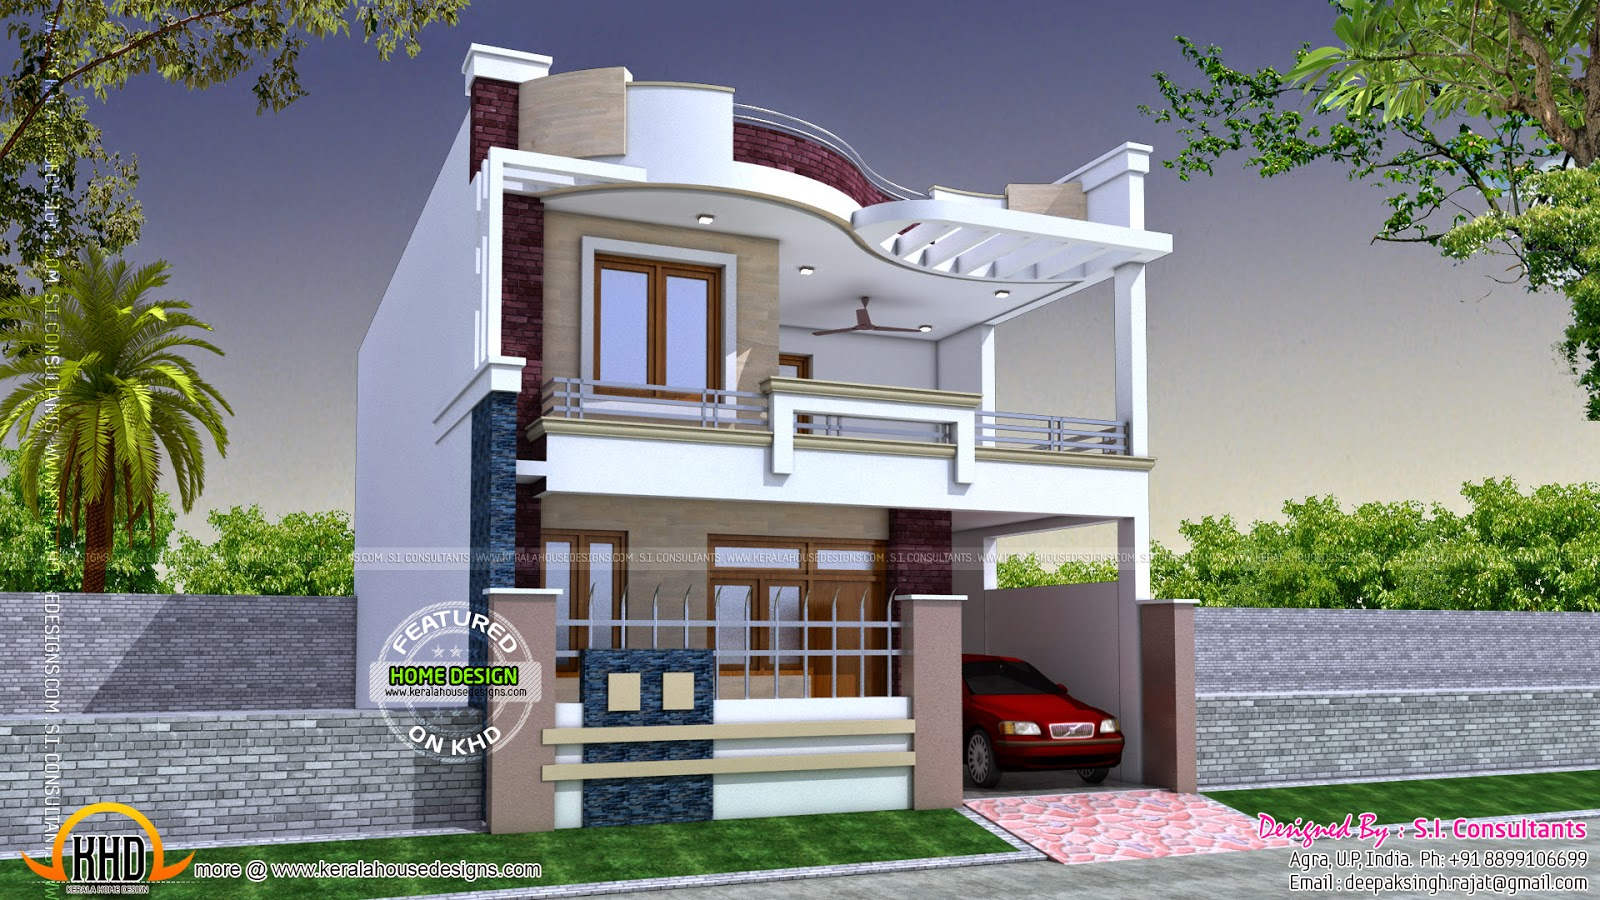 Modern indian home design kerala home design and floor plans for House architecture styles in india